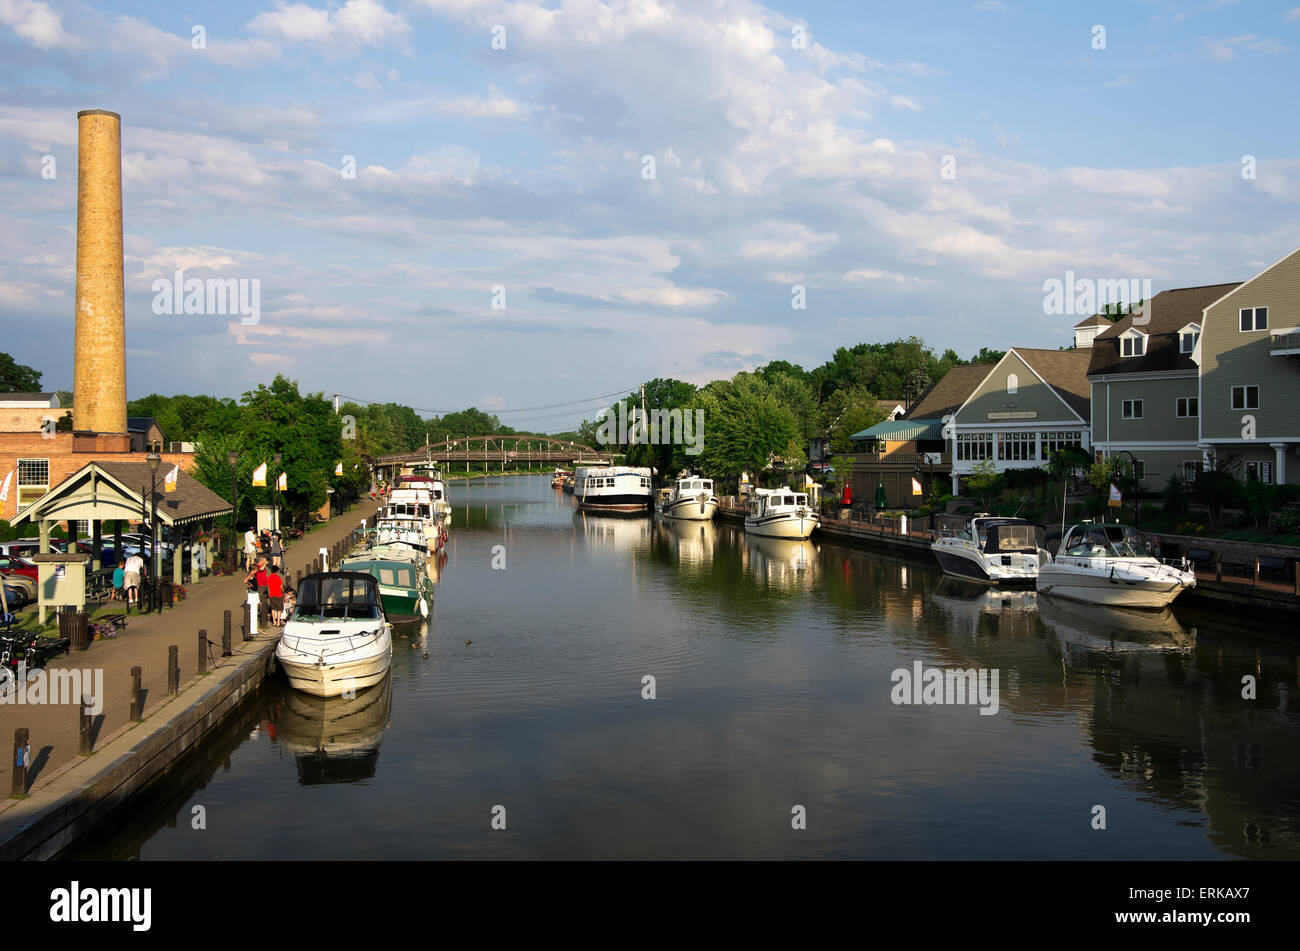 Small private and charter boats tied up along canal wall, looking East; Fairport, New York, United States of America - Stock Image